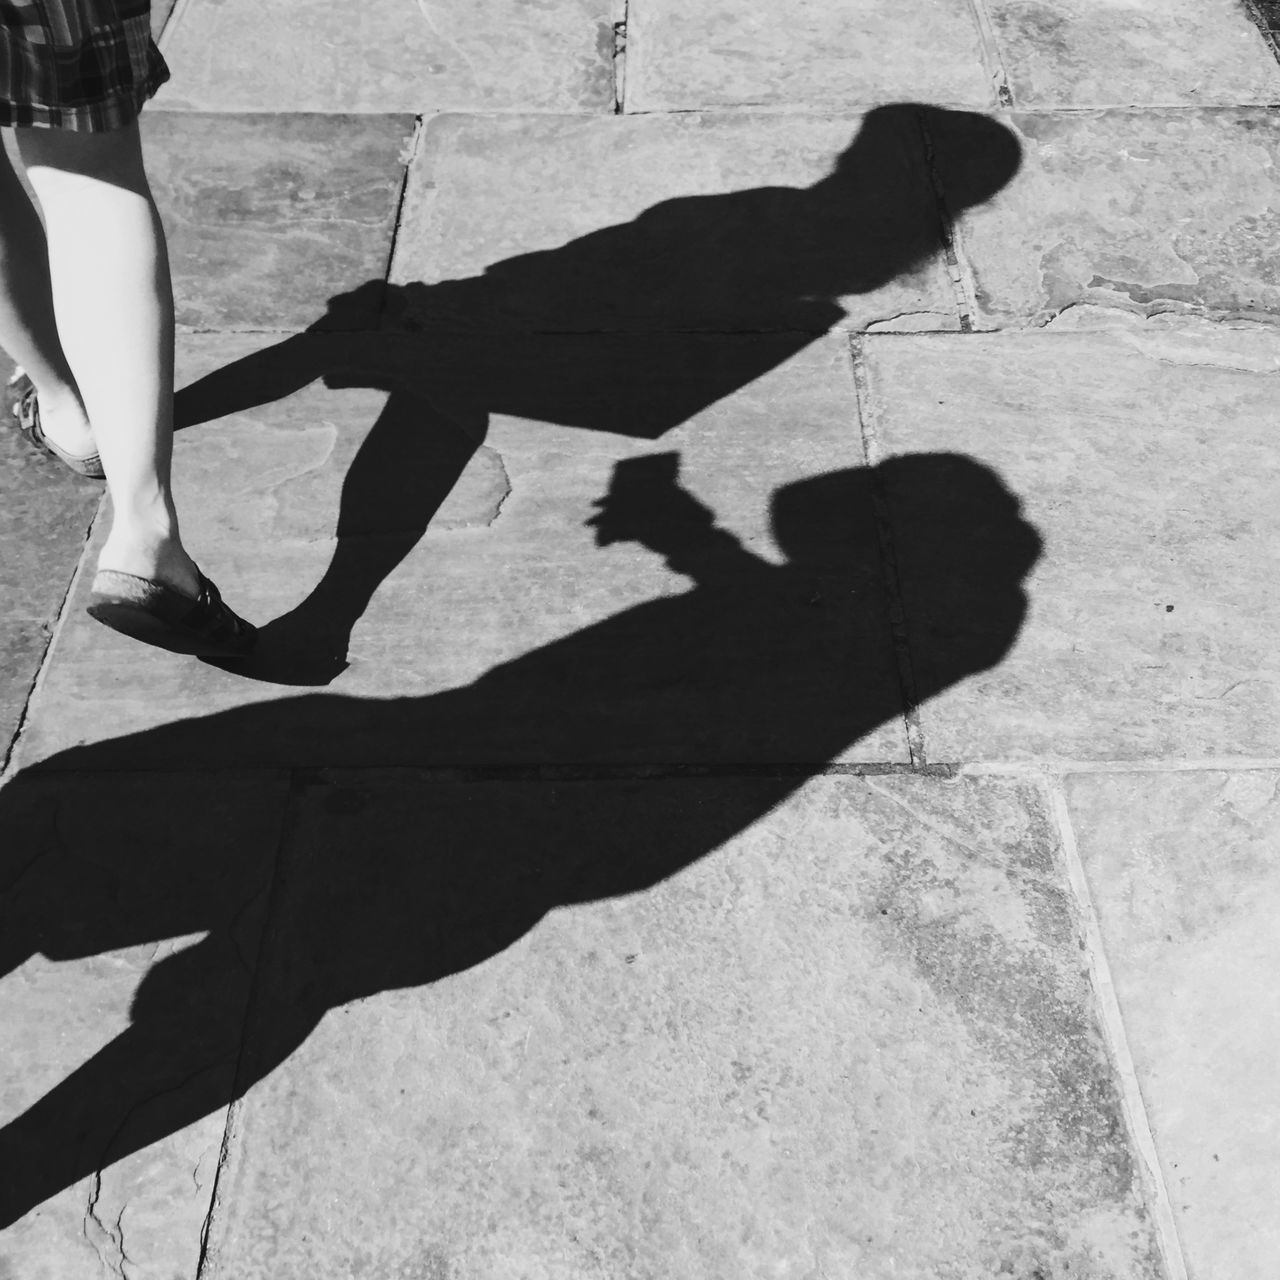 shadow, sunlight, real people, low section, focus on shadow, leisure activity, one person, human leg, lifestyles, day, outdoors, standing, skill, friendship, human hand, people